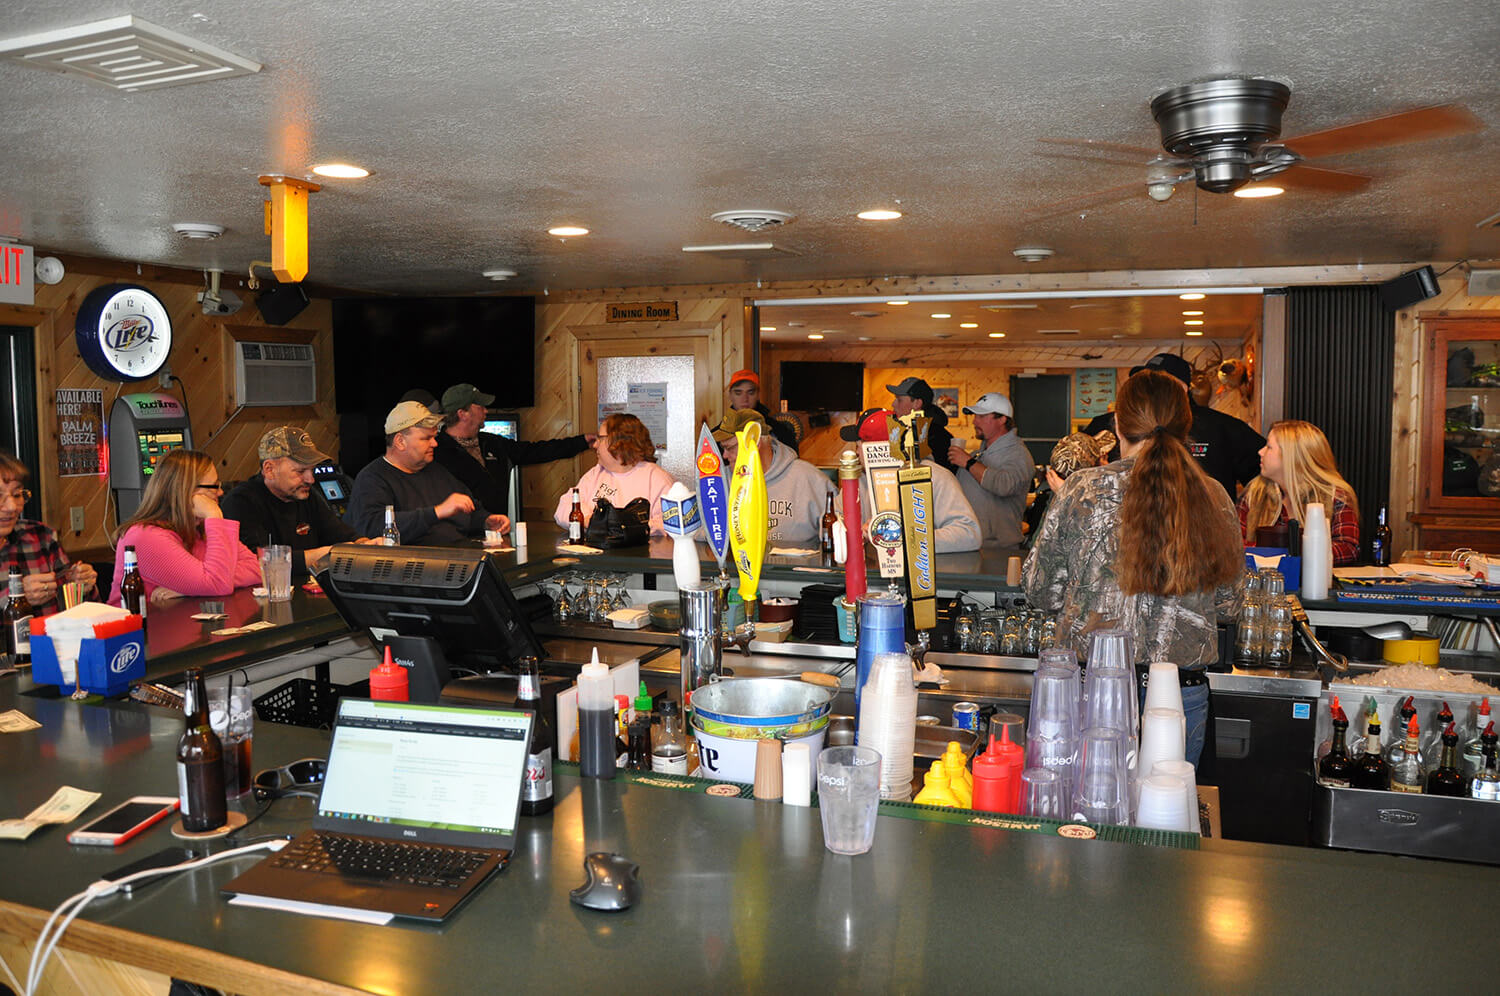 the crowd at hunters point resort bar